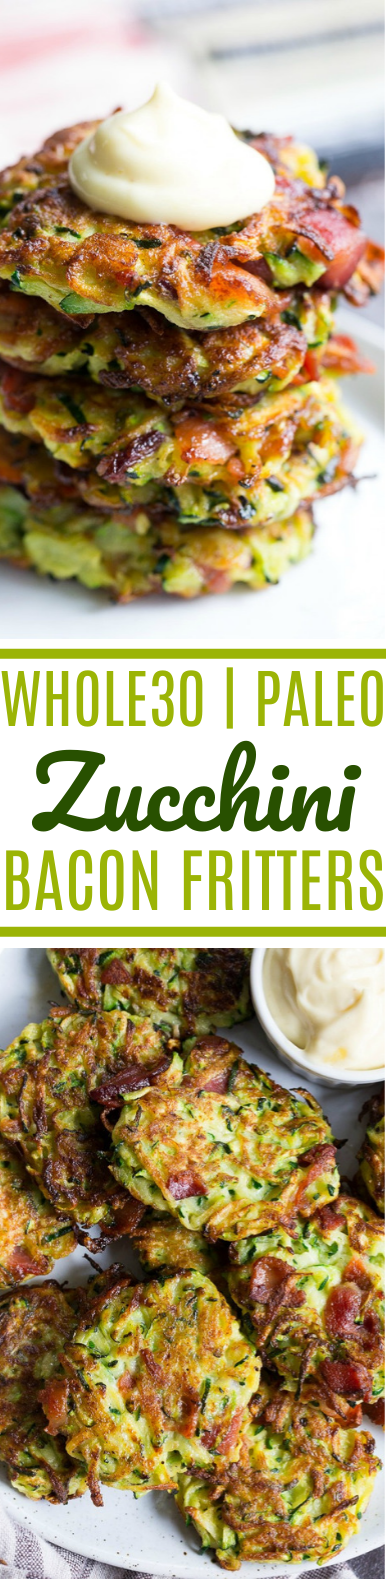 Bacon Zucchini Fritters #healthy #paleo #whole30 #lunch #breakfast